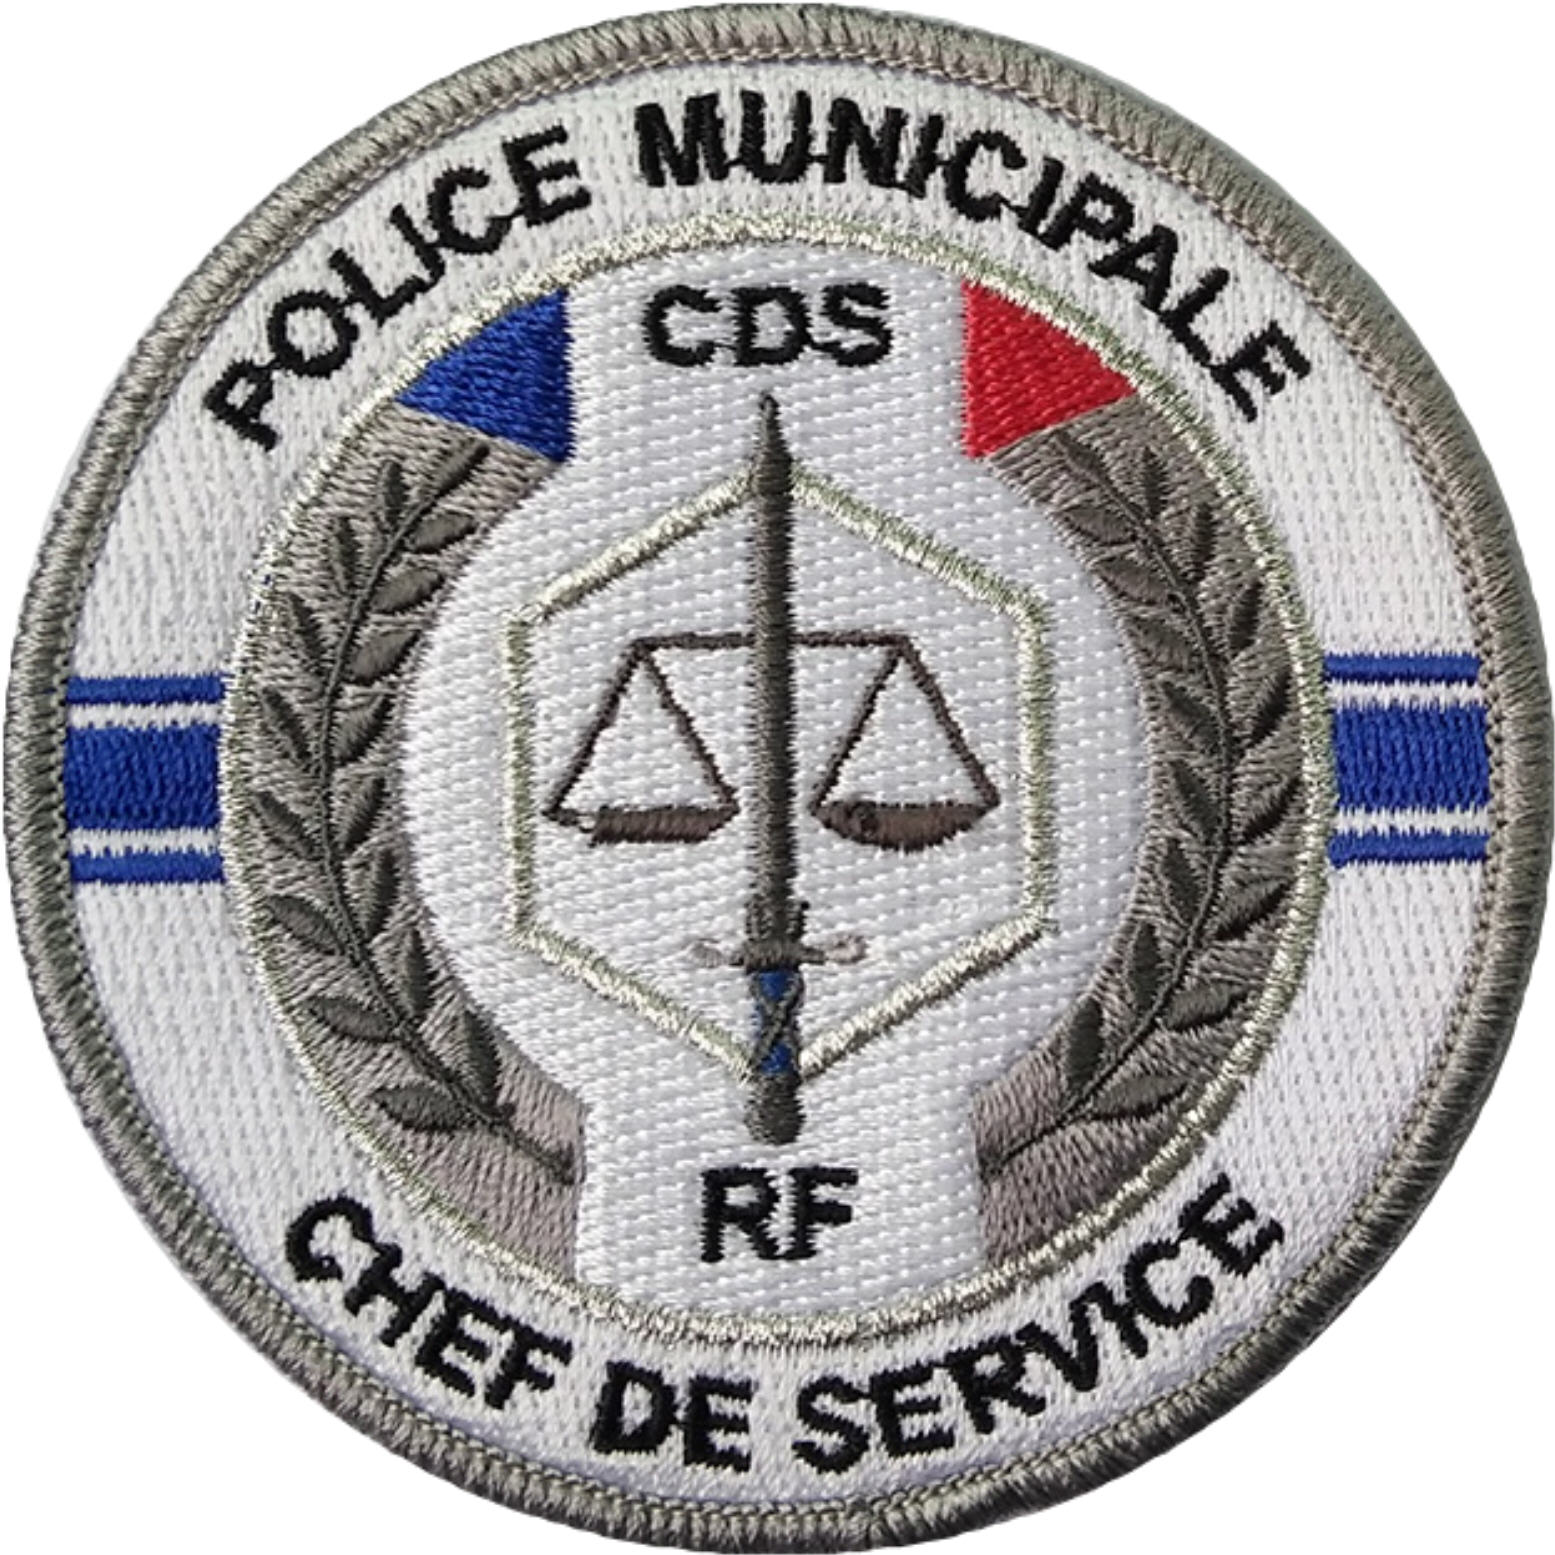 ÉCUSSON POLICE MUNICIPALE CHEF DE SERVICE CDS